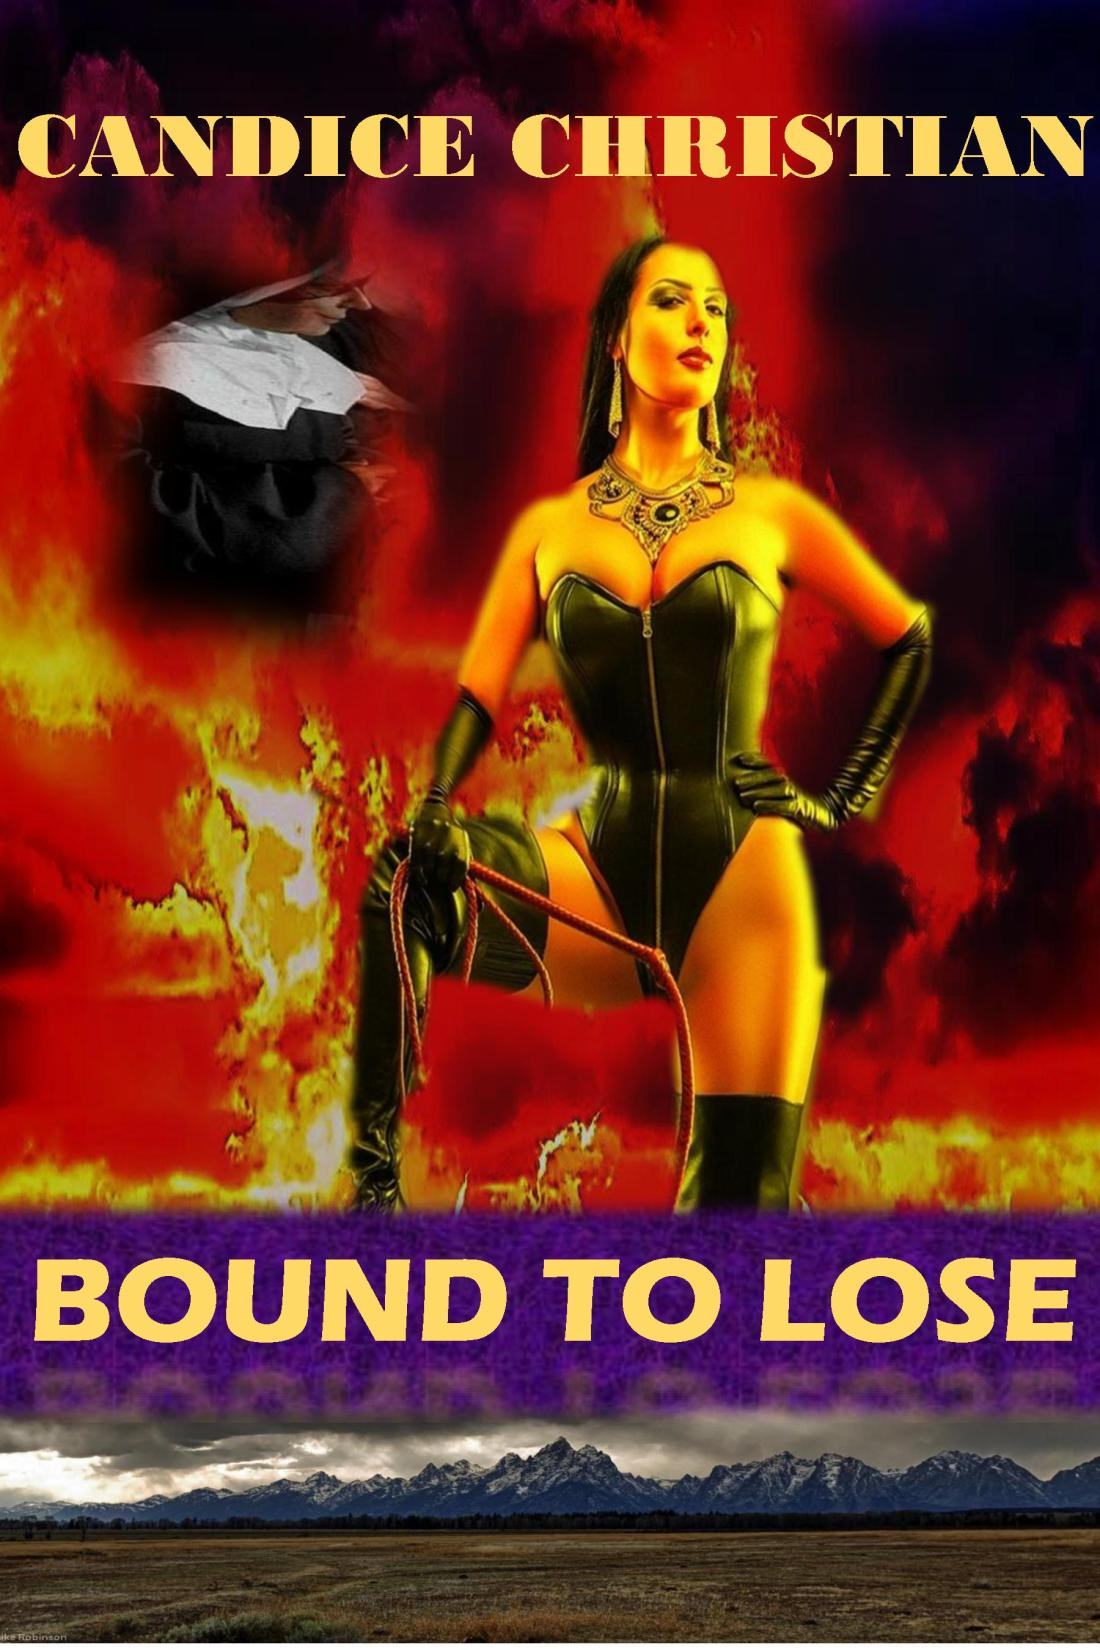 BOUND TO LOSE COVER ART